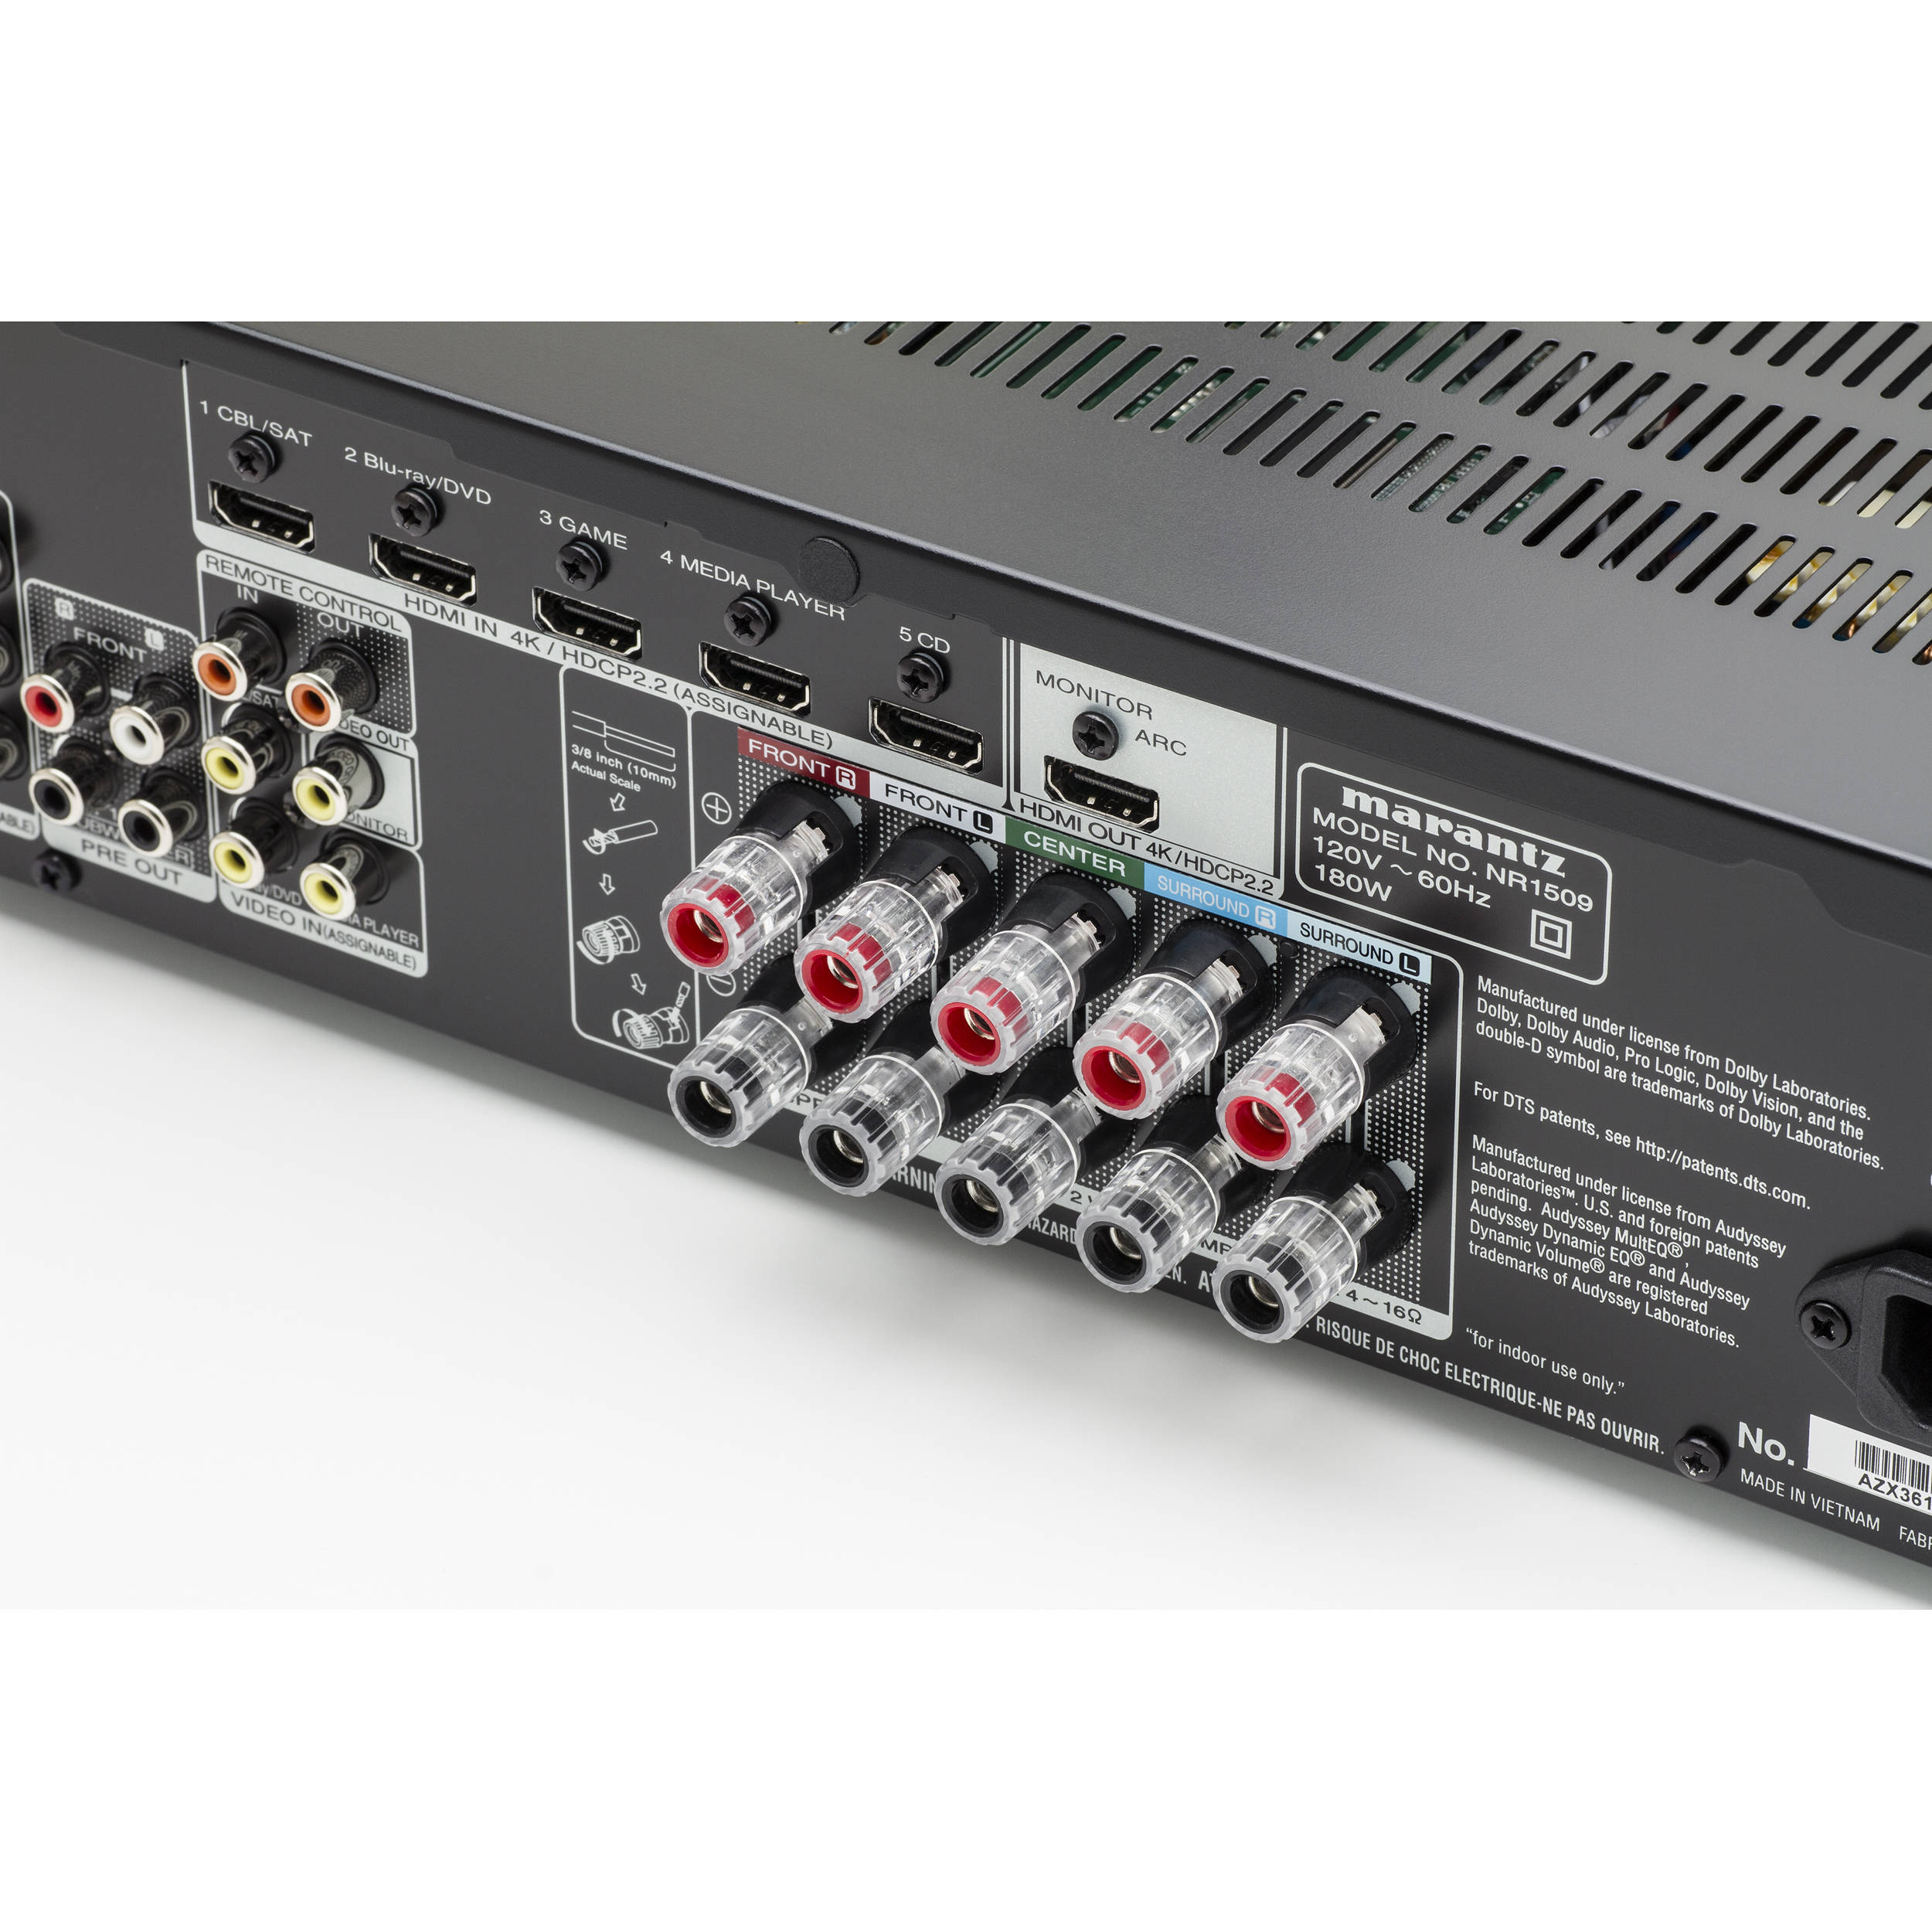 Marantz NR1509 5 2-Channel Network A/V Receiver